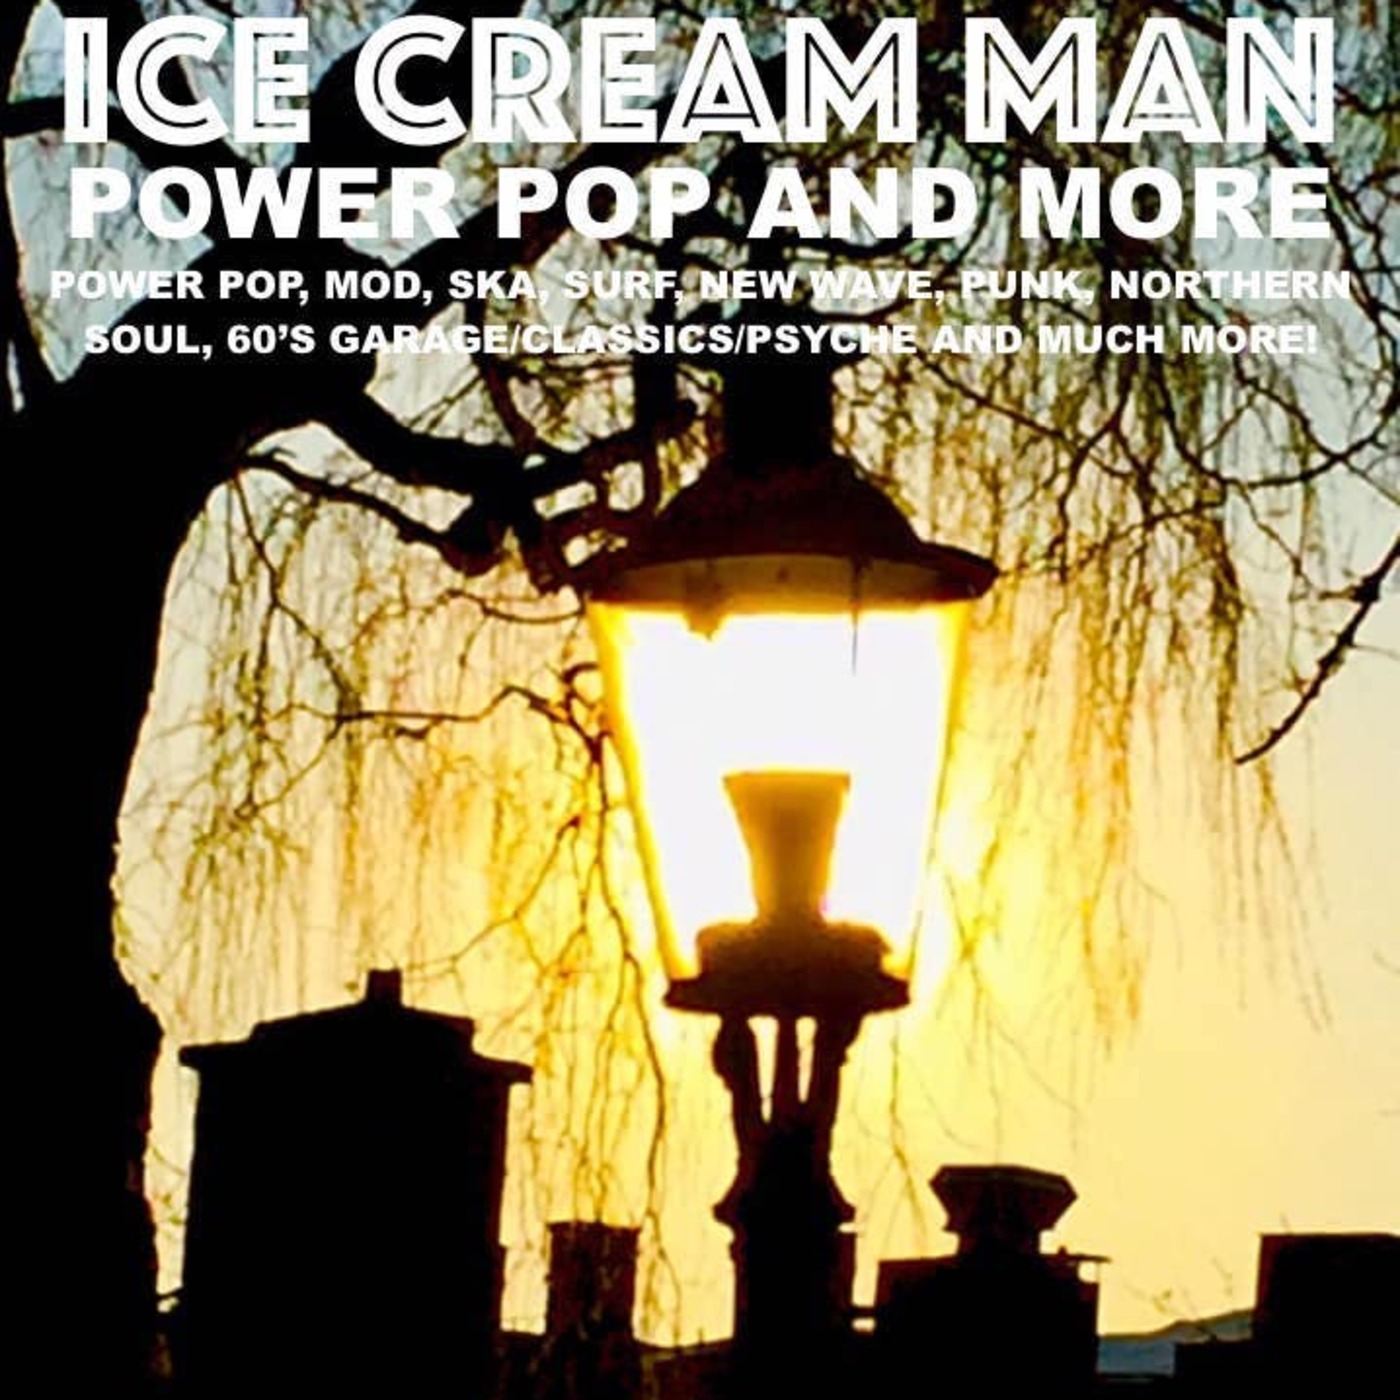 Ice Cream Man Power Pop and More #290